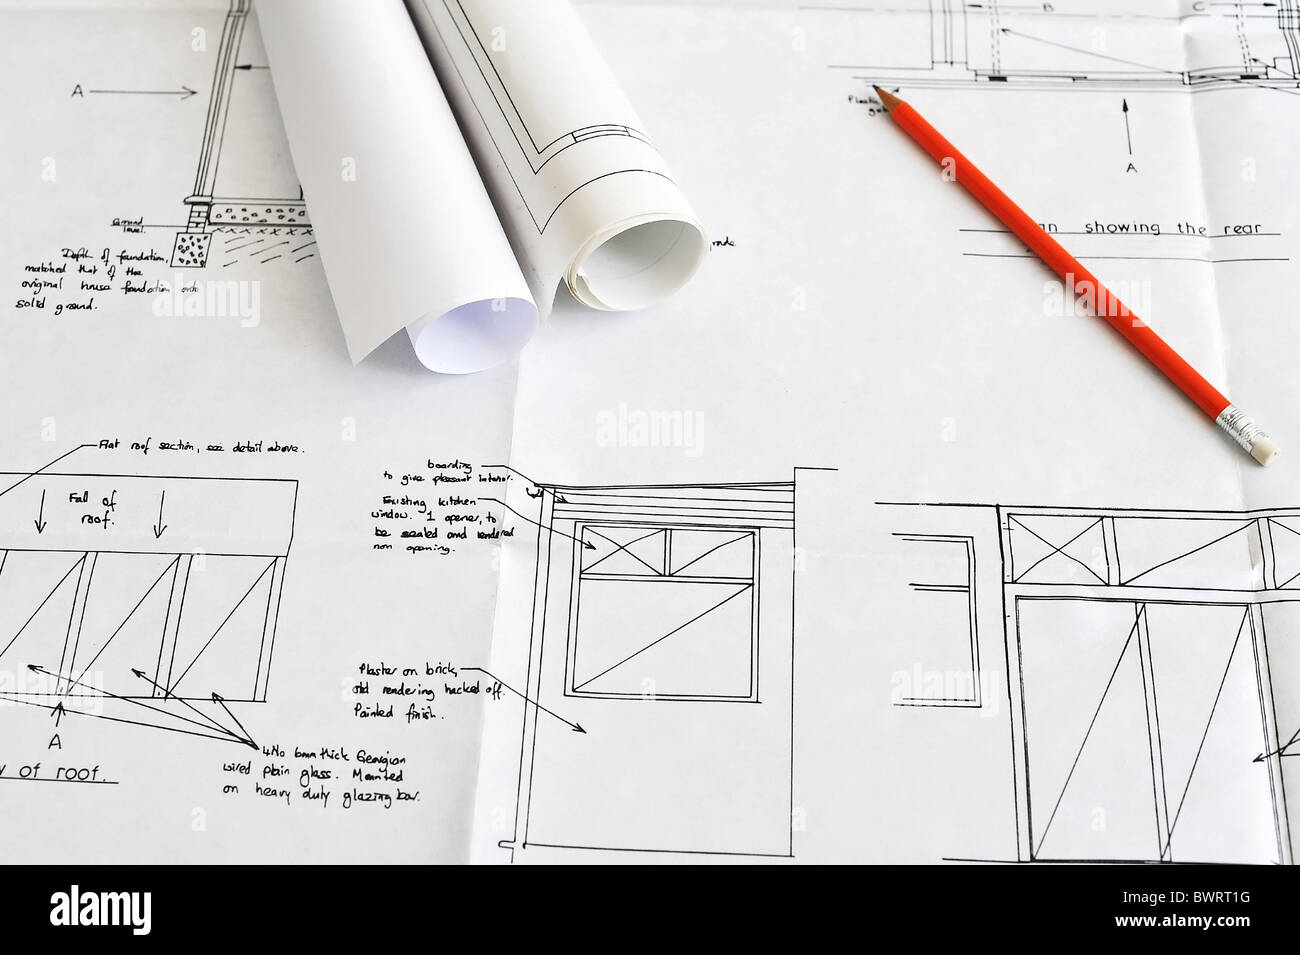 Blueprint Plans Of Home Building And Construction With Other Items